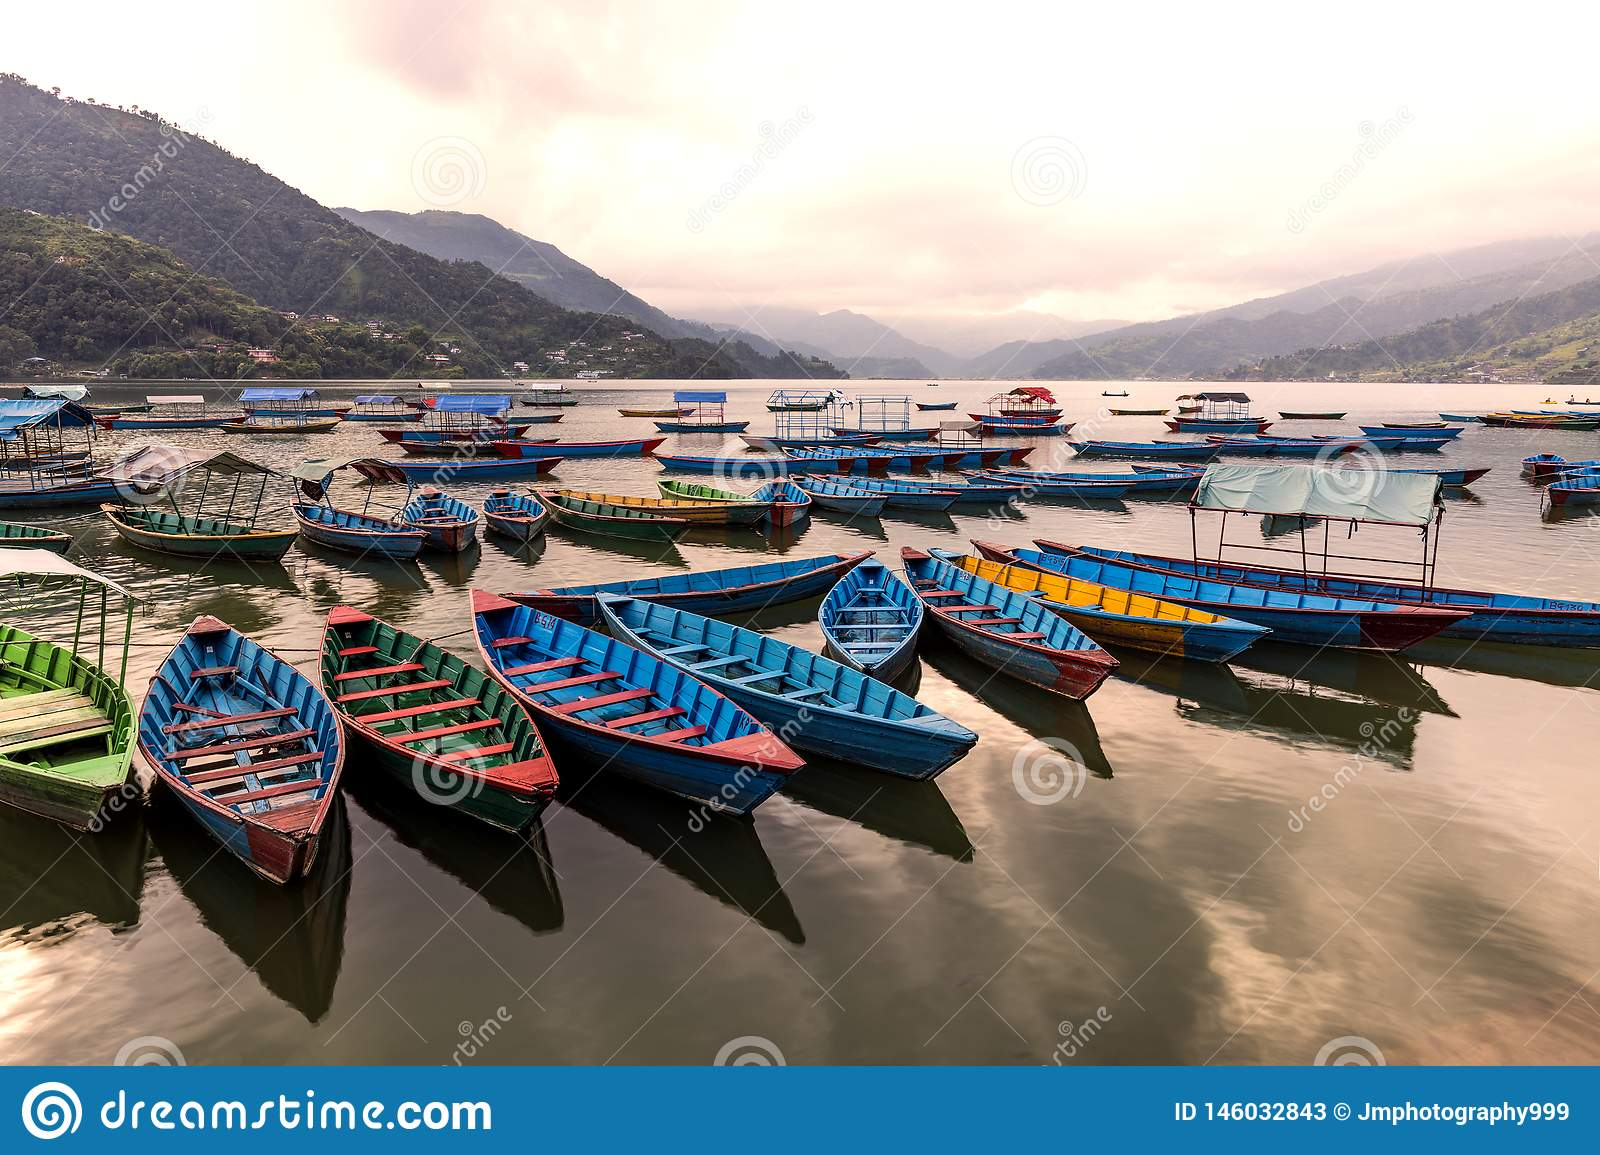 WOODEN BOATS IN LAKE